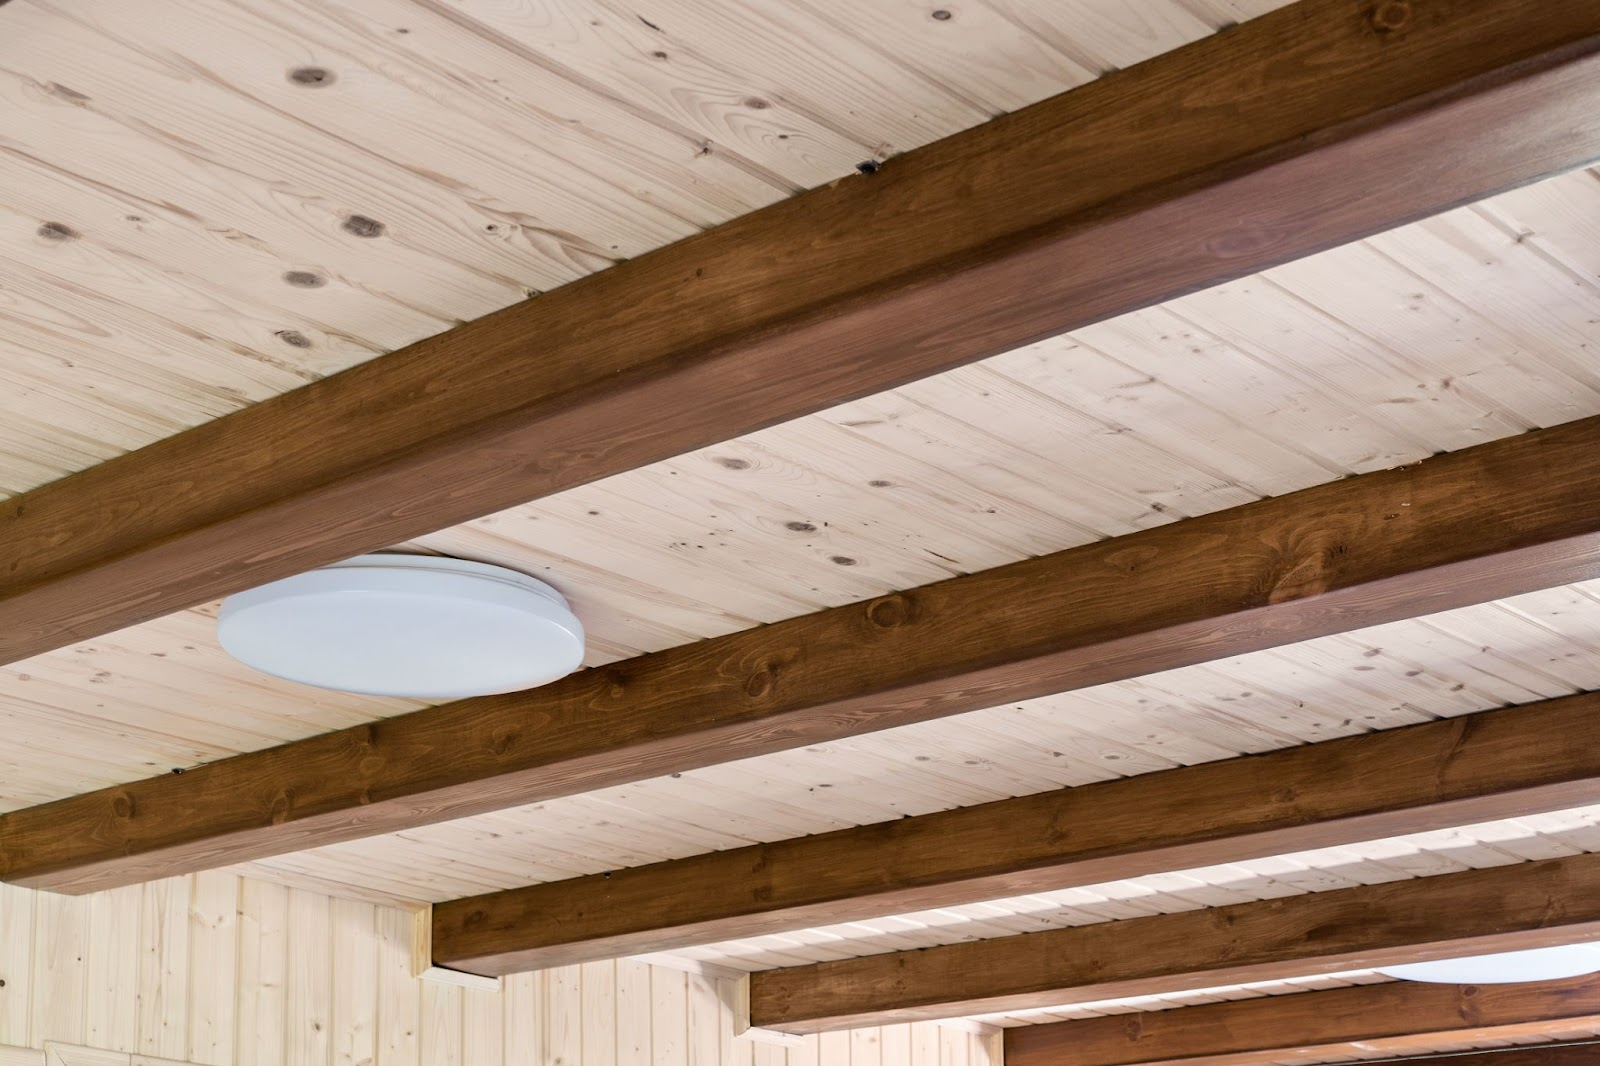 Example of exposed ceiling joist